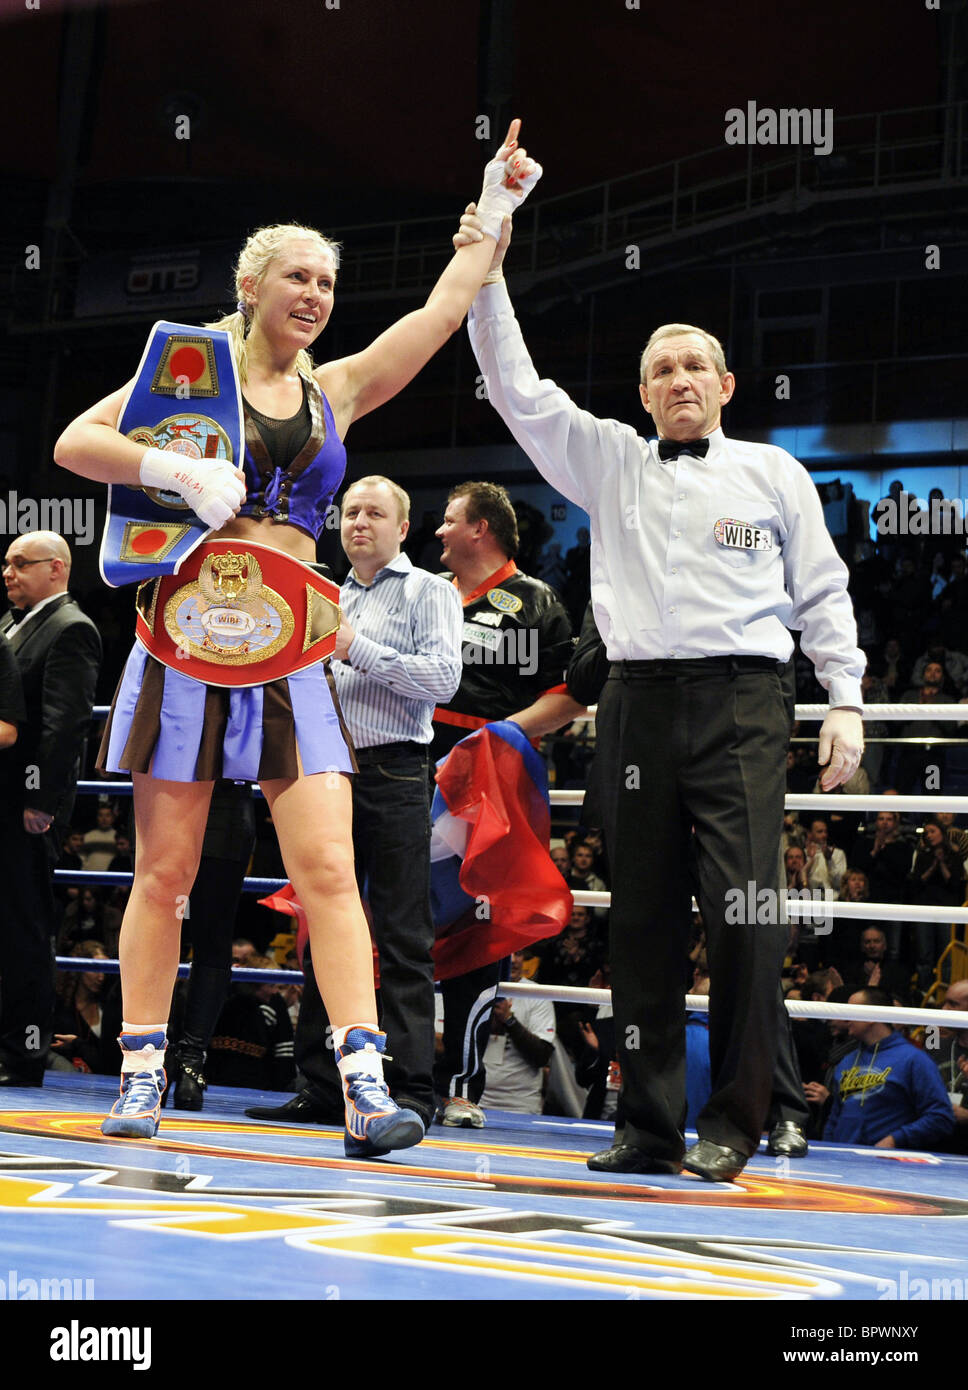 Natasha Ragozina wins WIBF heavyweight title - Stock Image